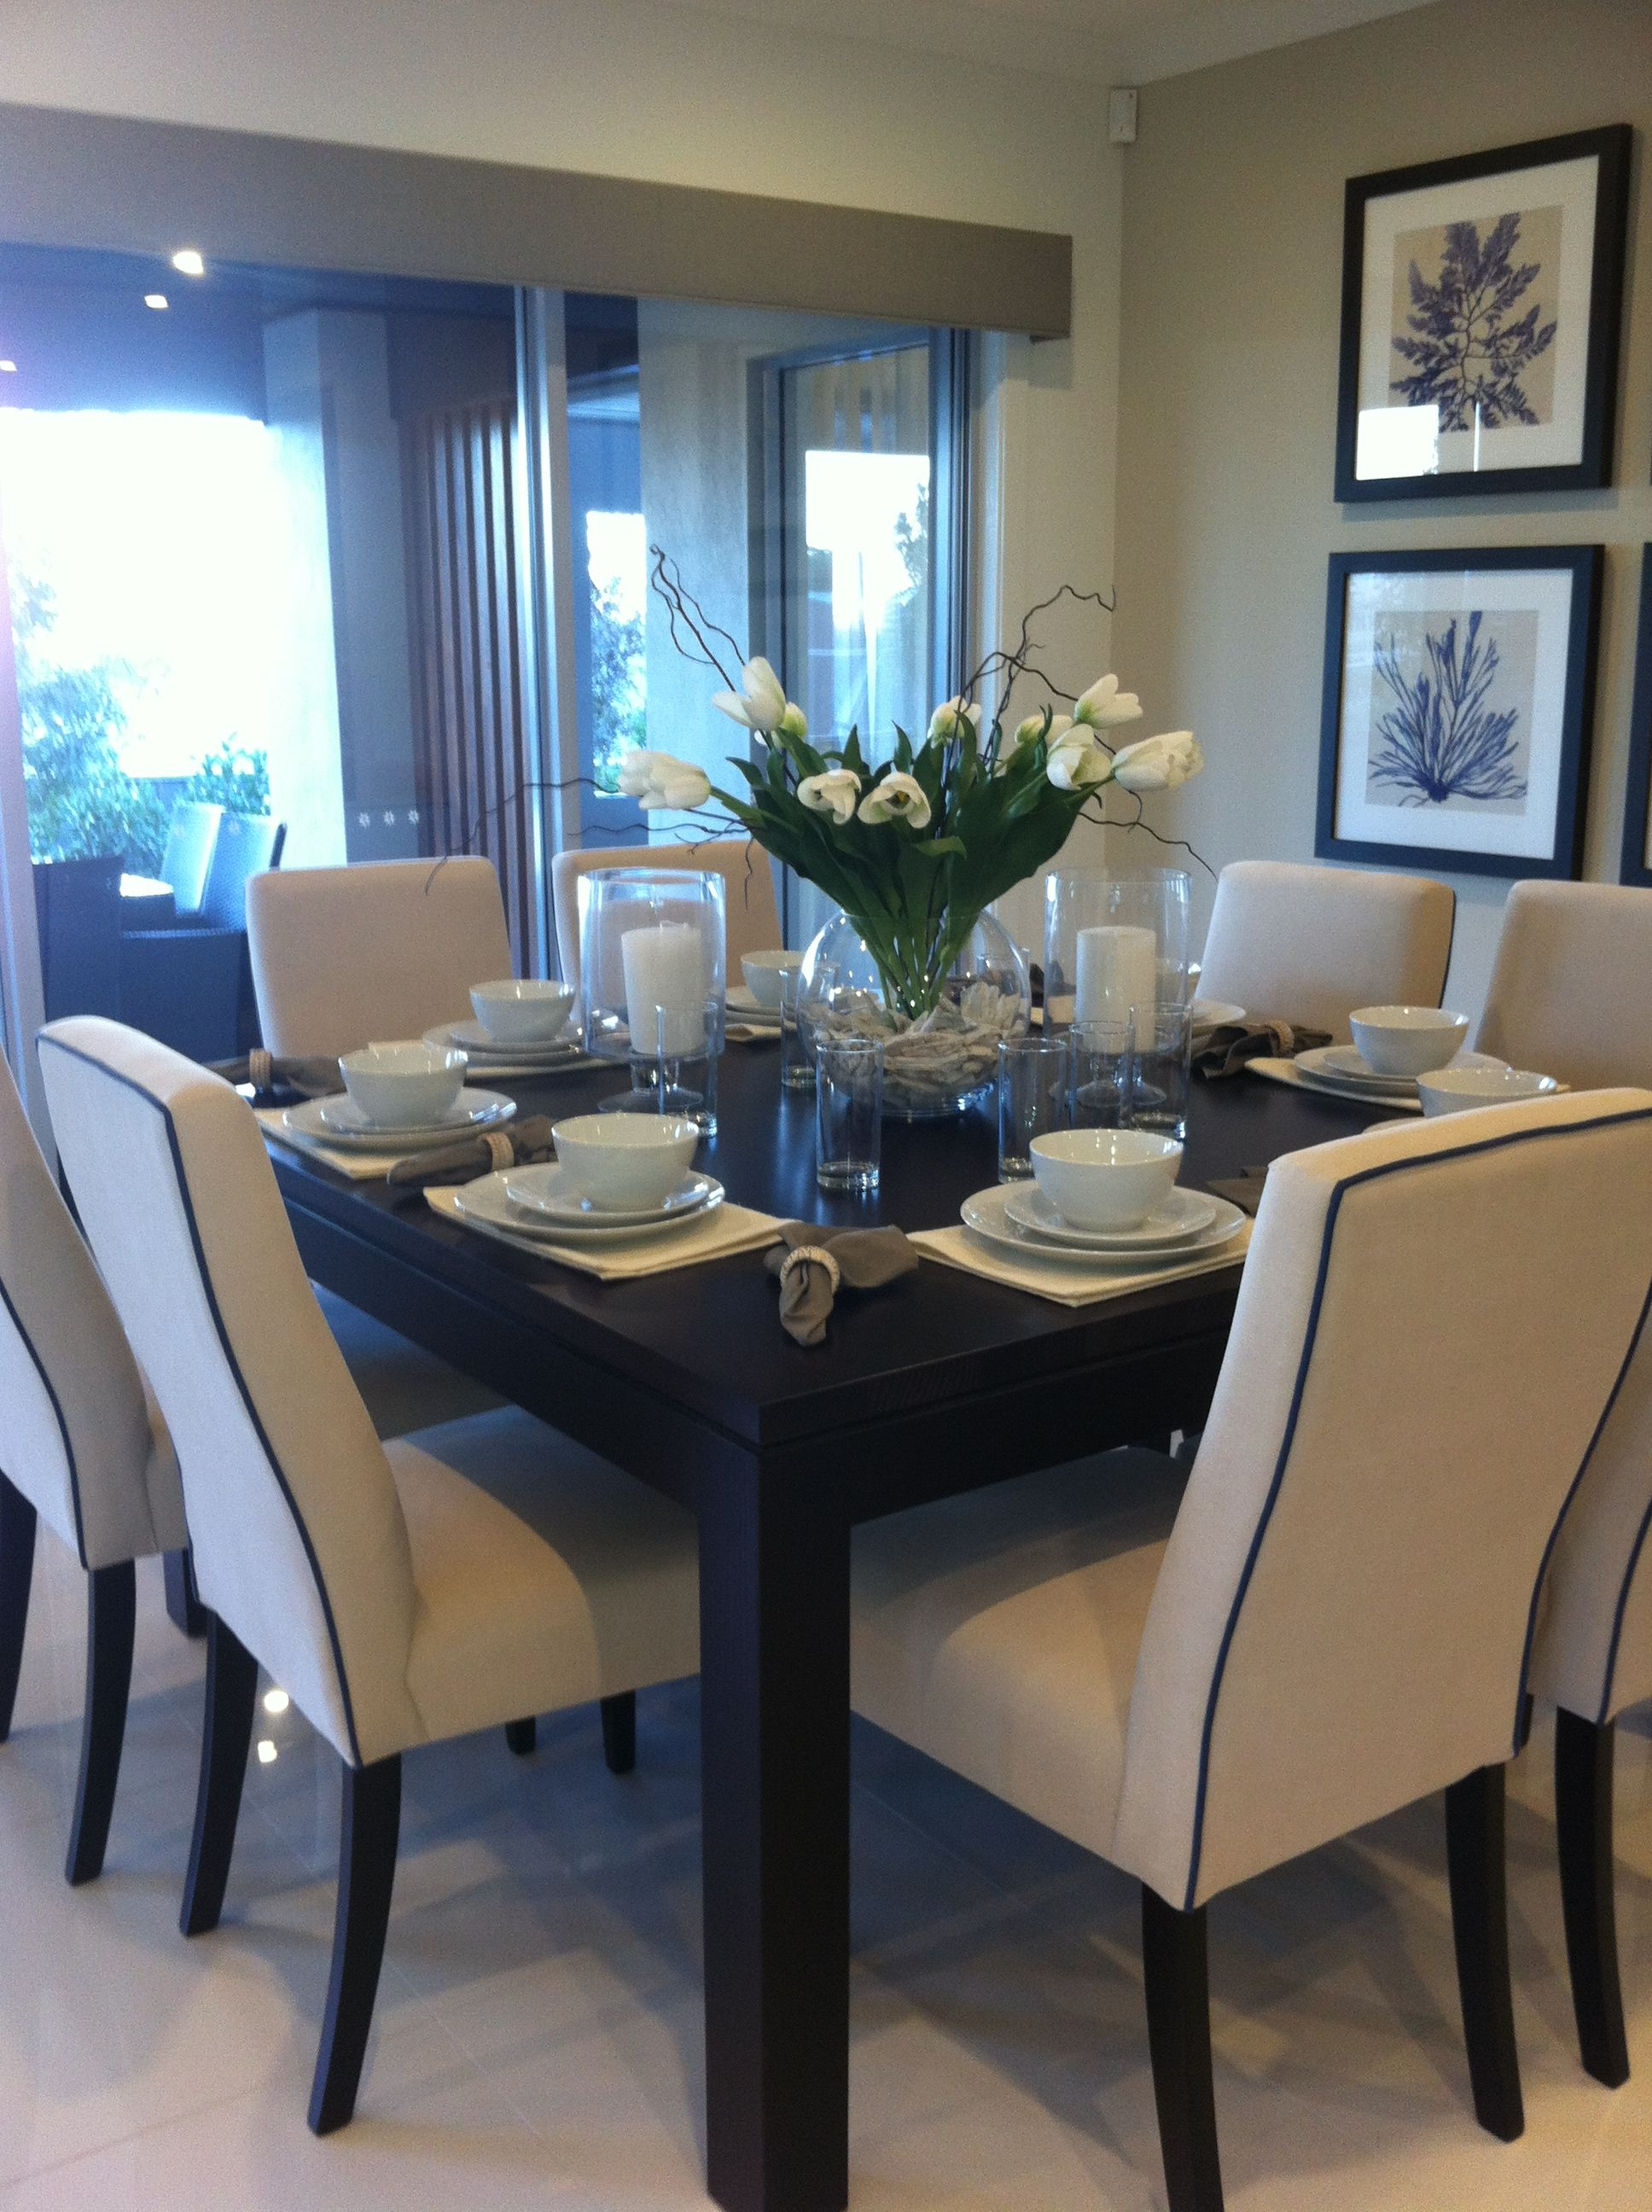 Staging The Dining Room, How To Set A Dining Room Table For Staging